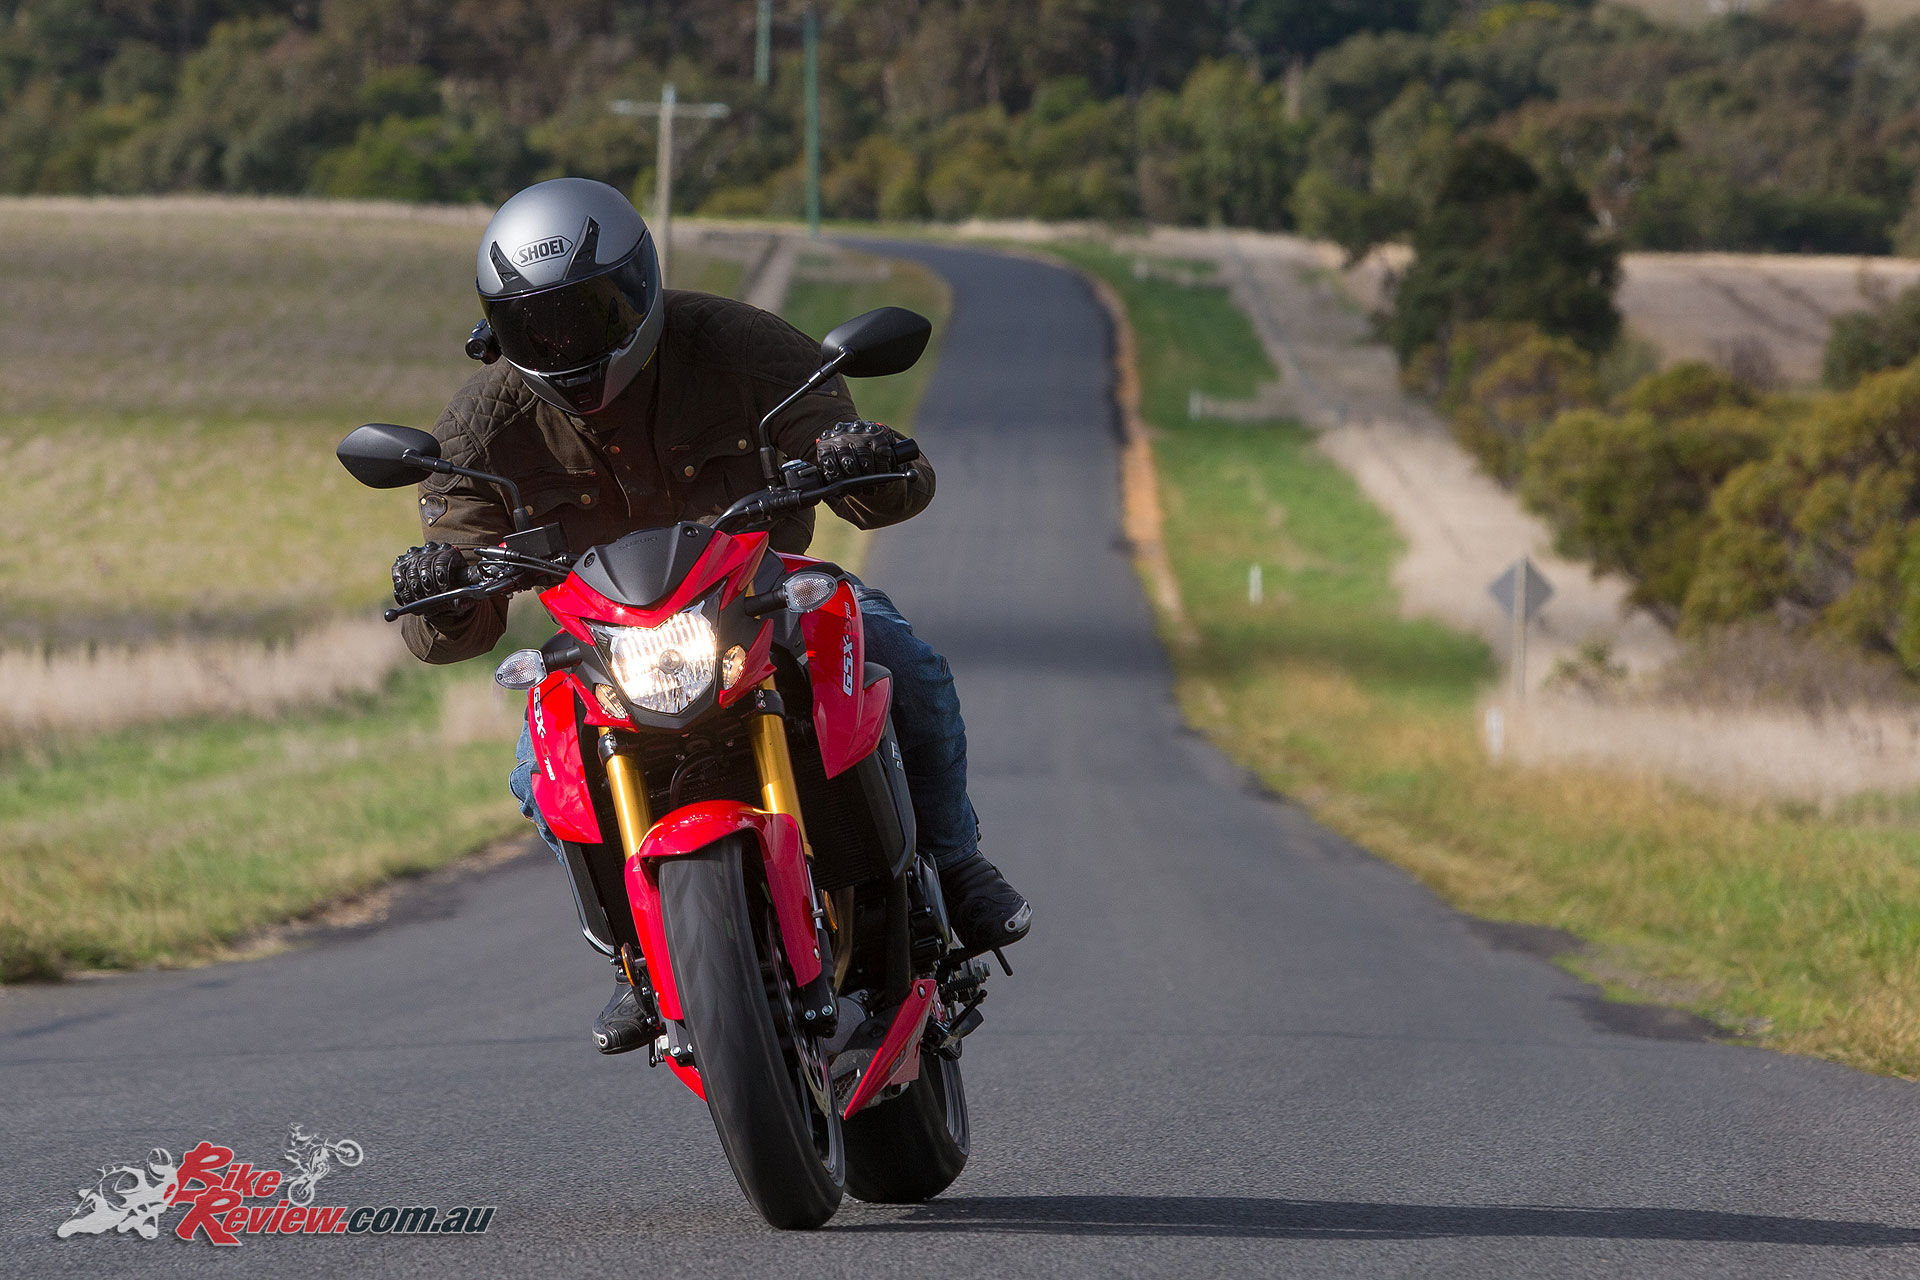 Rideability is great on the GSX-S750, with torque right from down low.